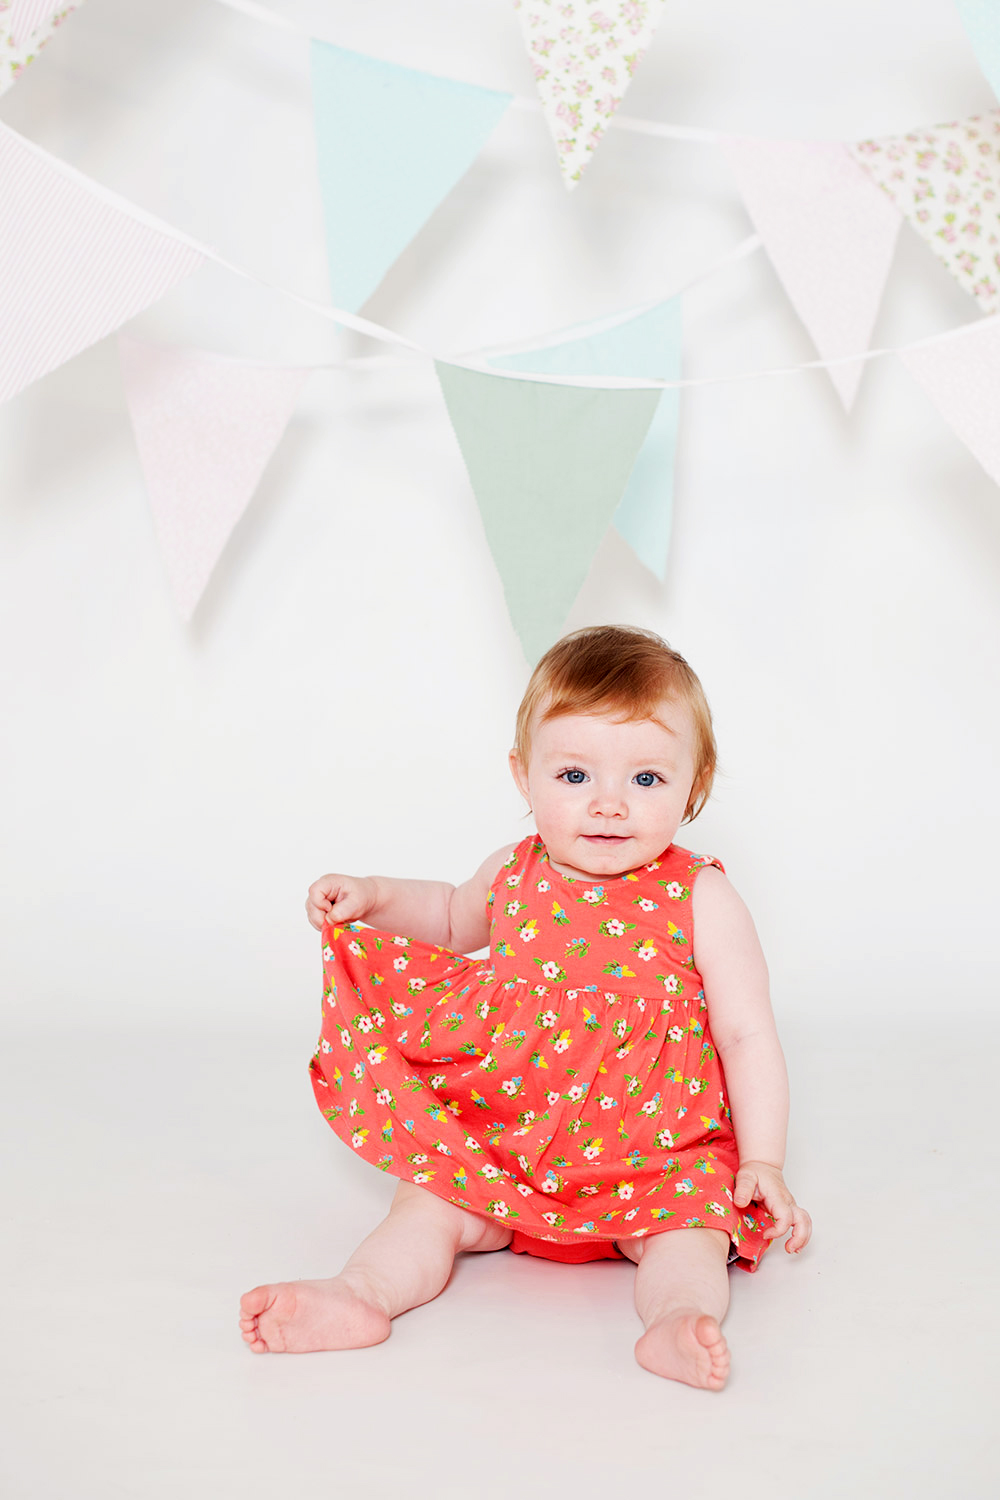 Cake Smash photography session in Maidenhead